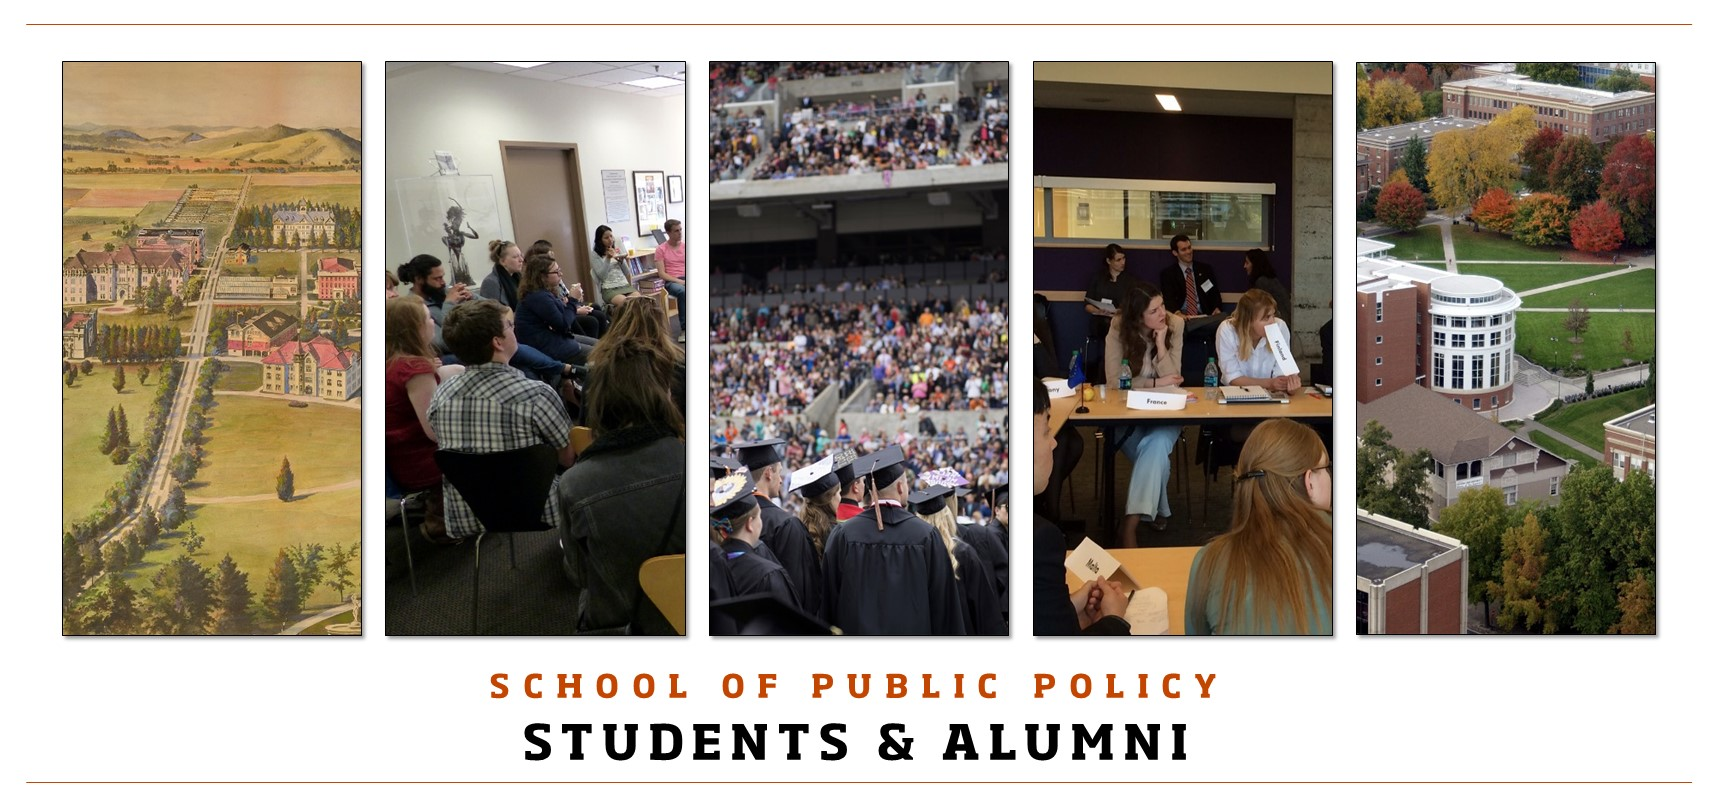 School of Public Policy Students and Alumni